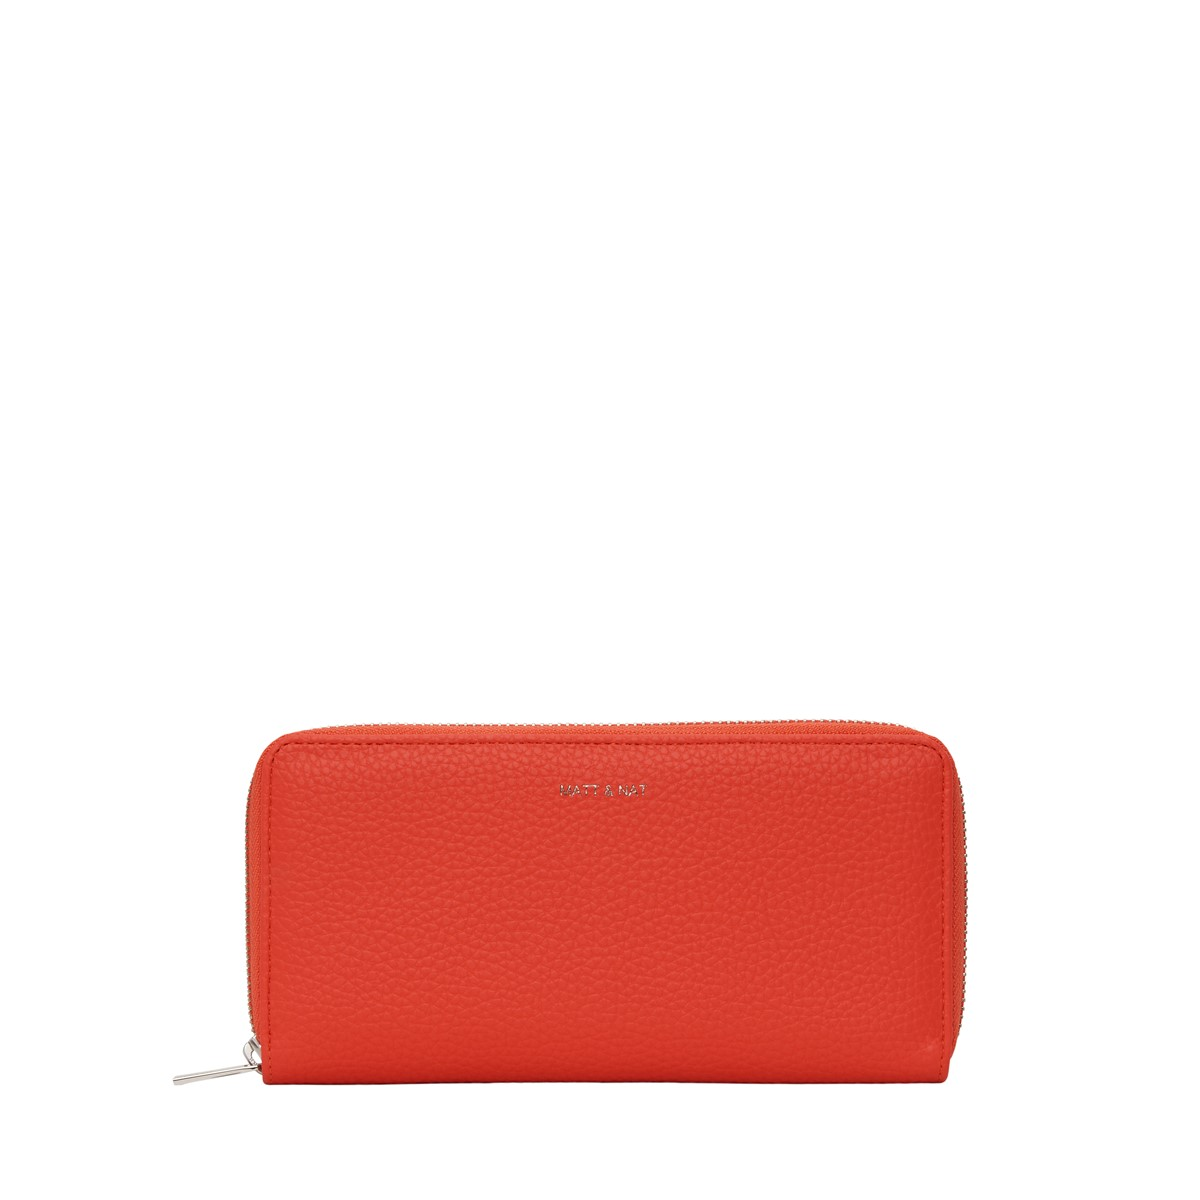 Central Purity Wallet in Red